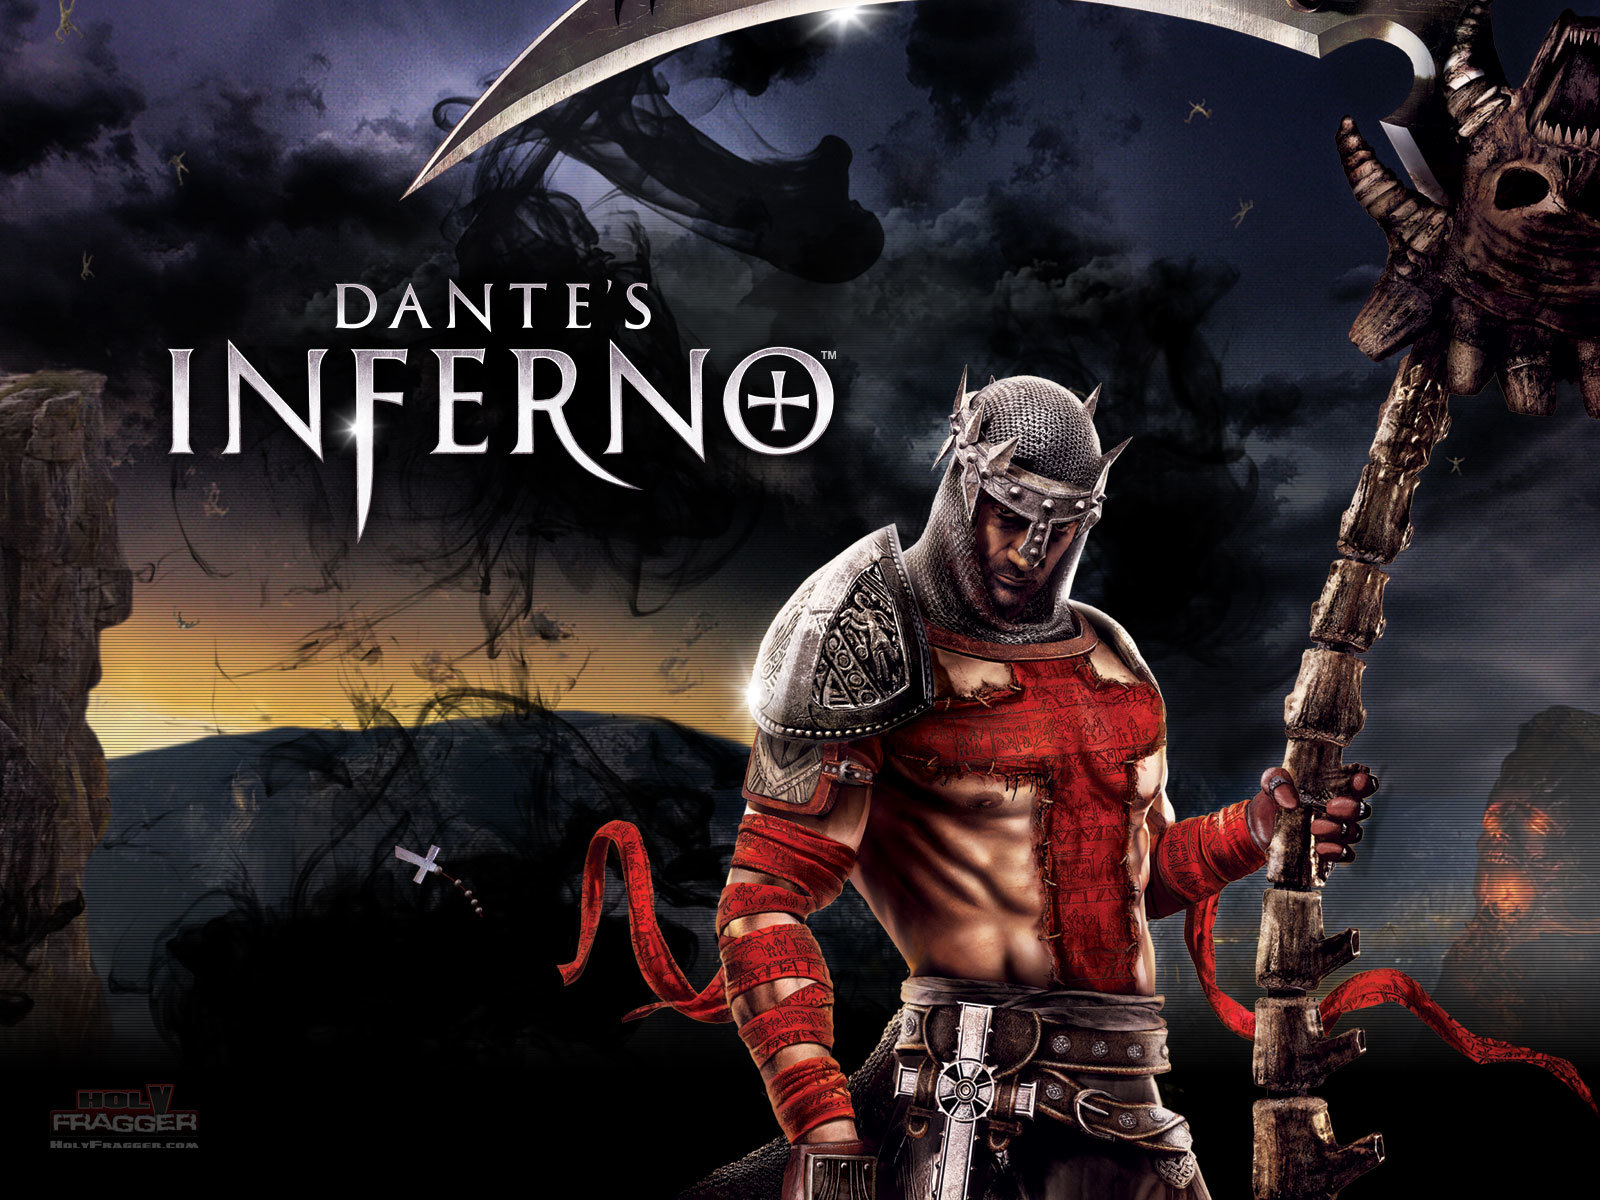 dantes inferno notes Free summary and analysis of inferno canto iii in dante alighieri's inferno that won't make you snore we promise.